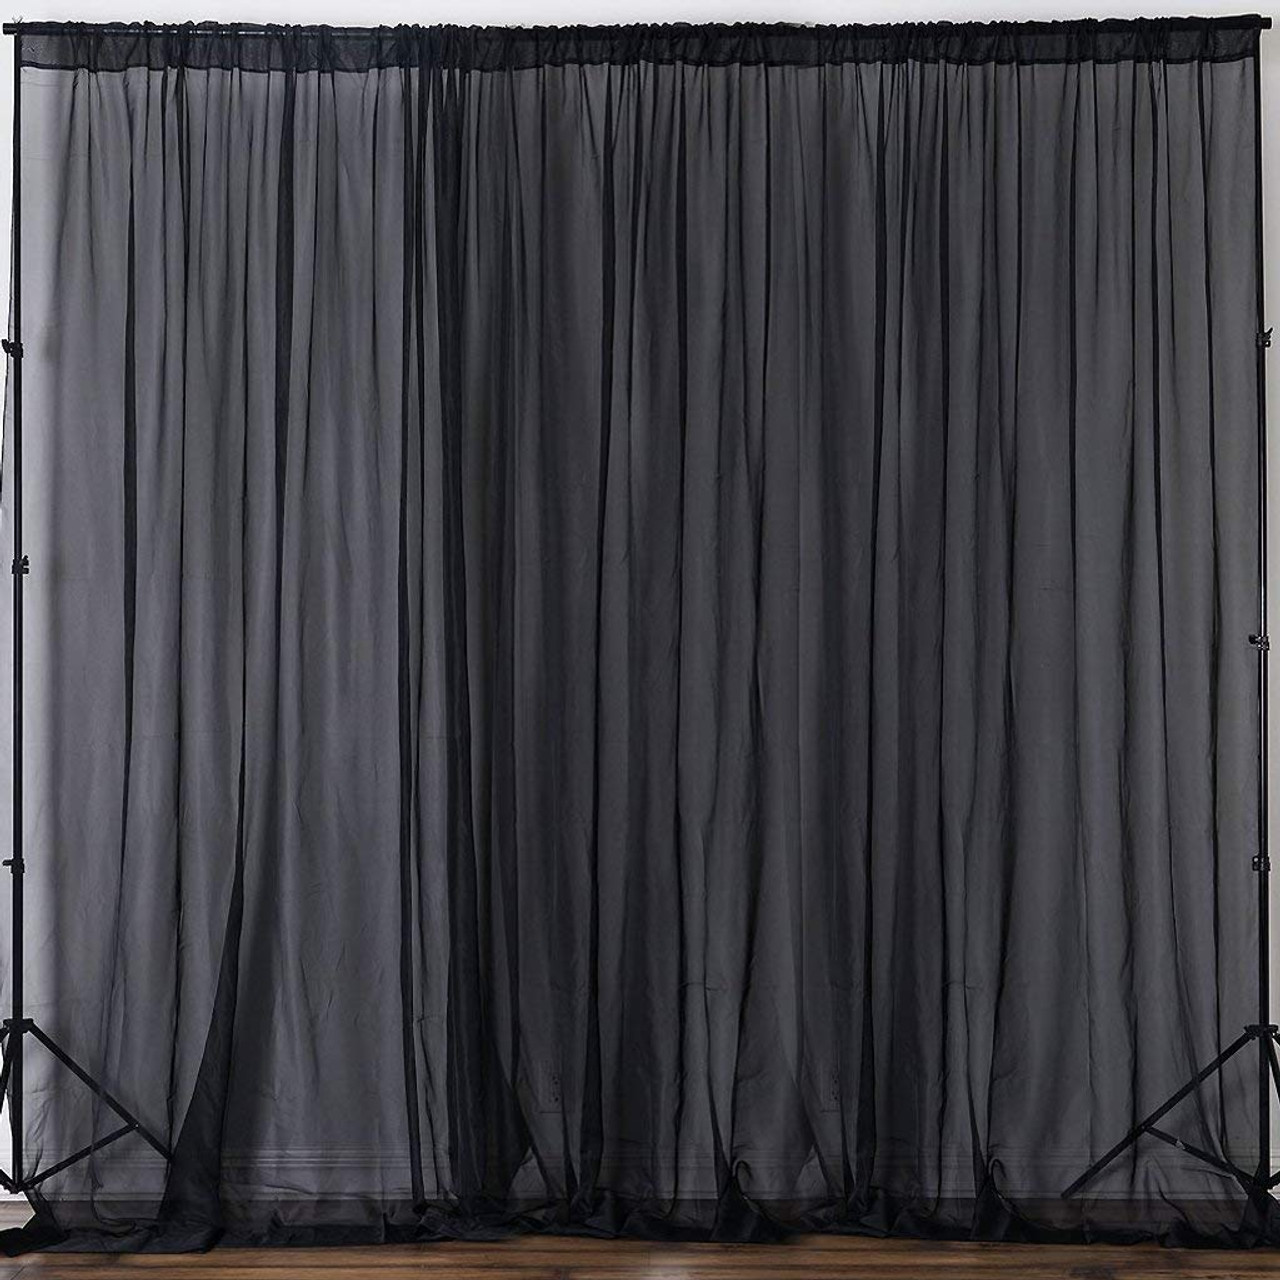 black 120 wide 10ft wide sheer voile drape panels select from 6ft to 50ft length